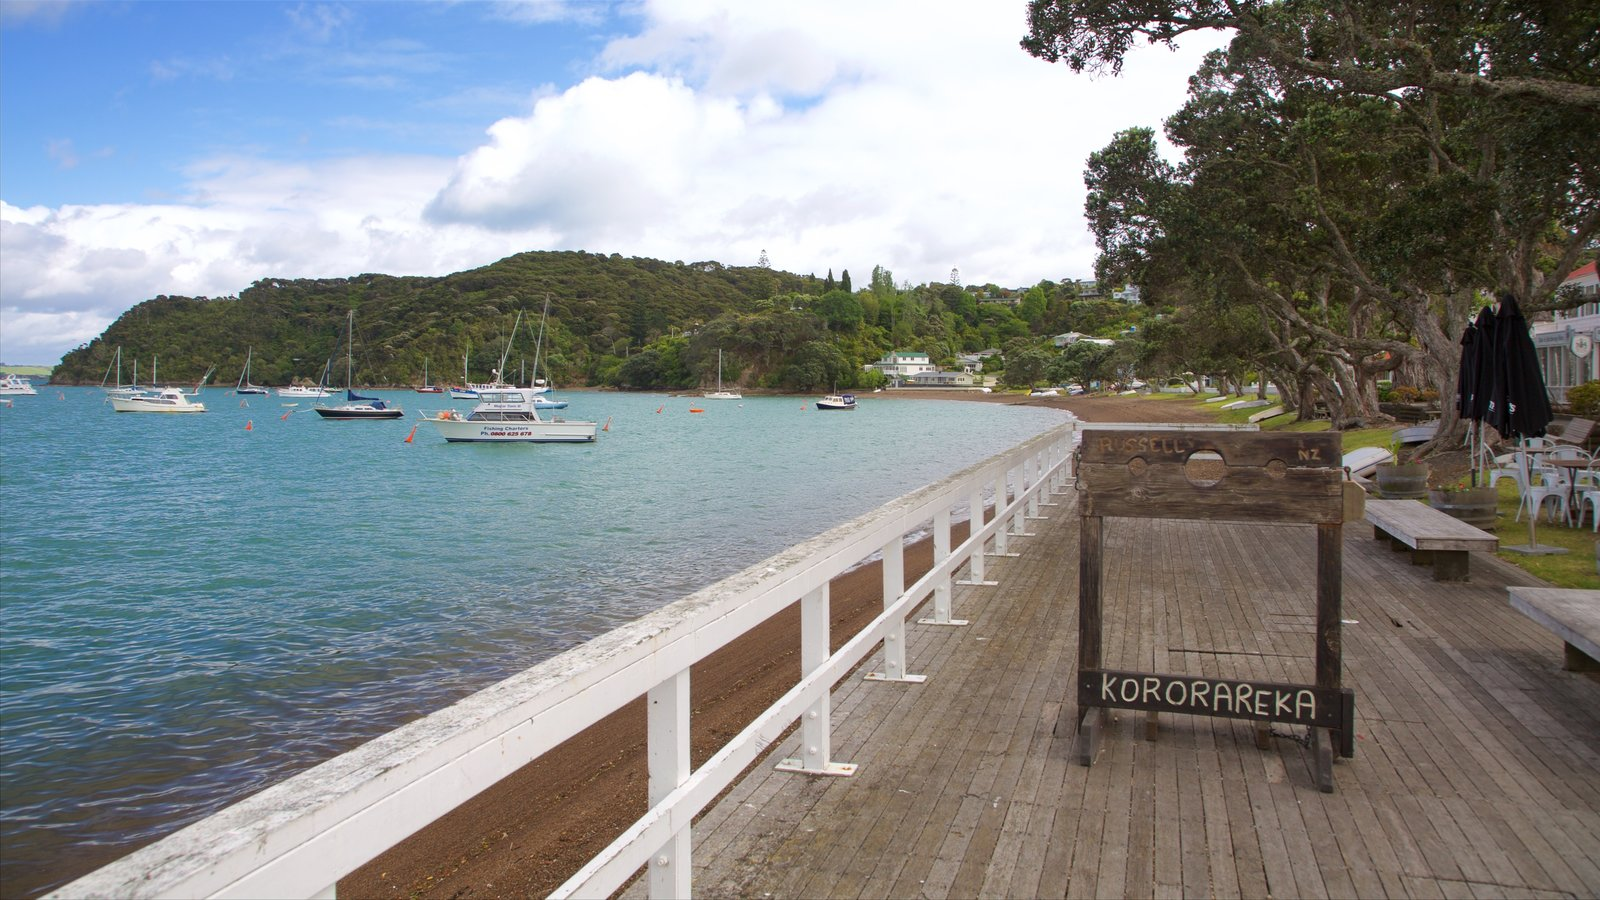 Russell Beach which includes a bay or harbor and general coastal views